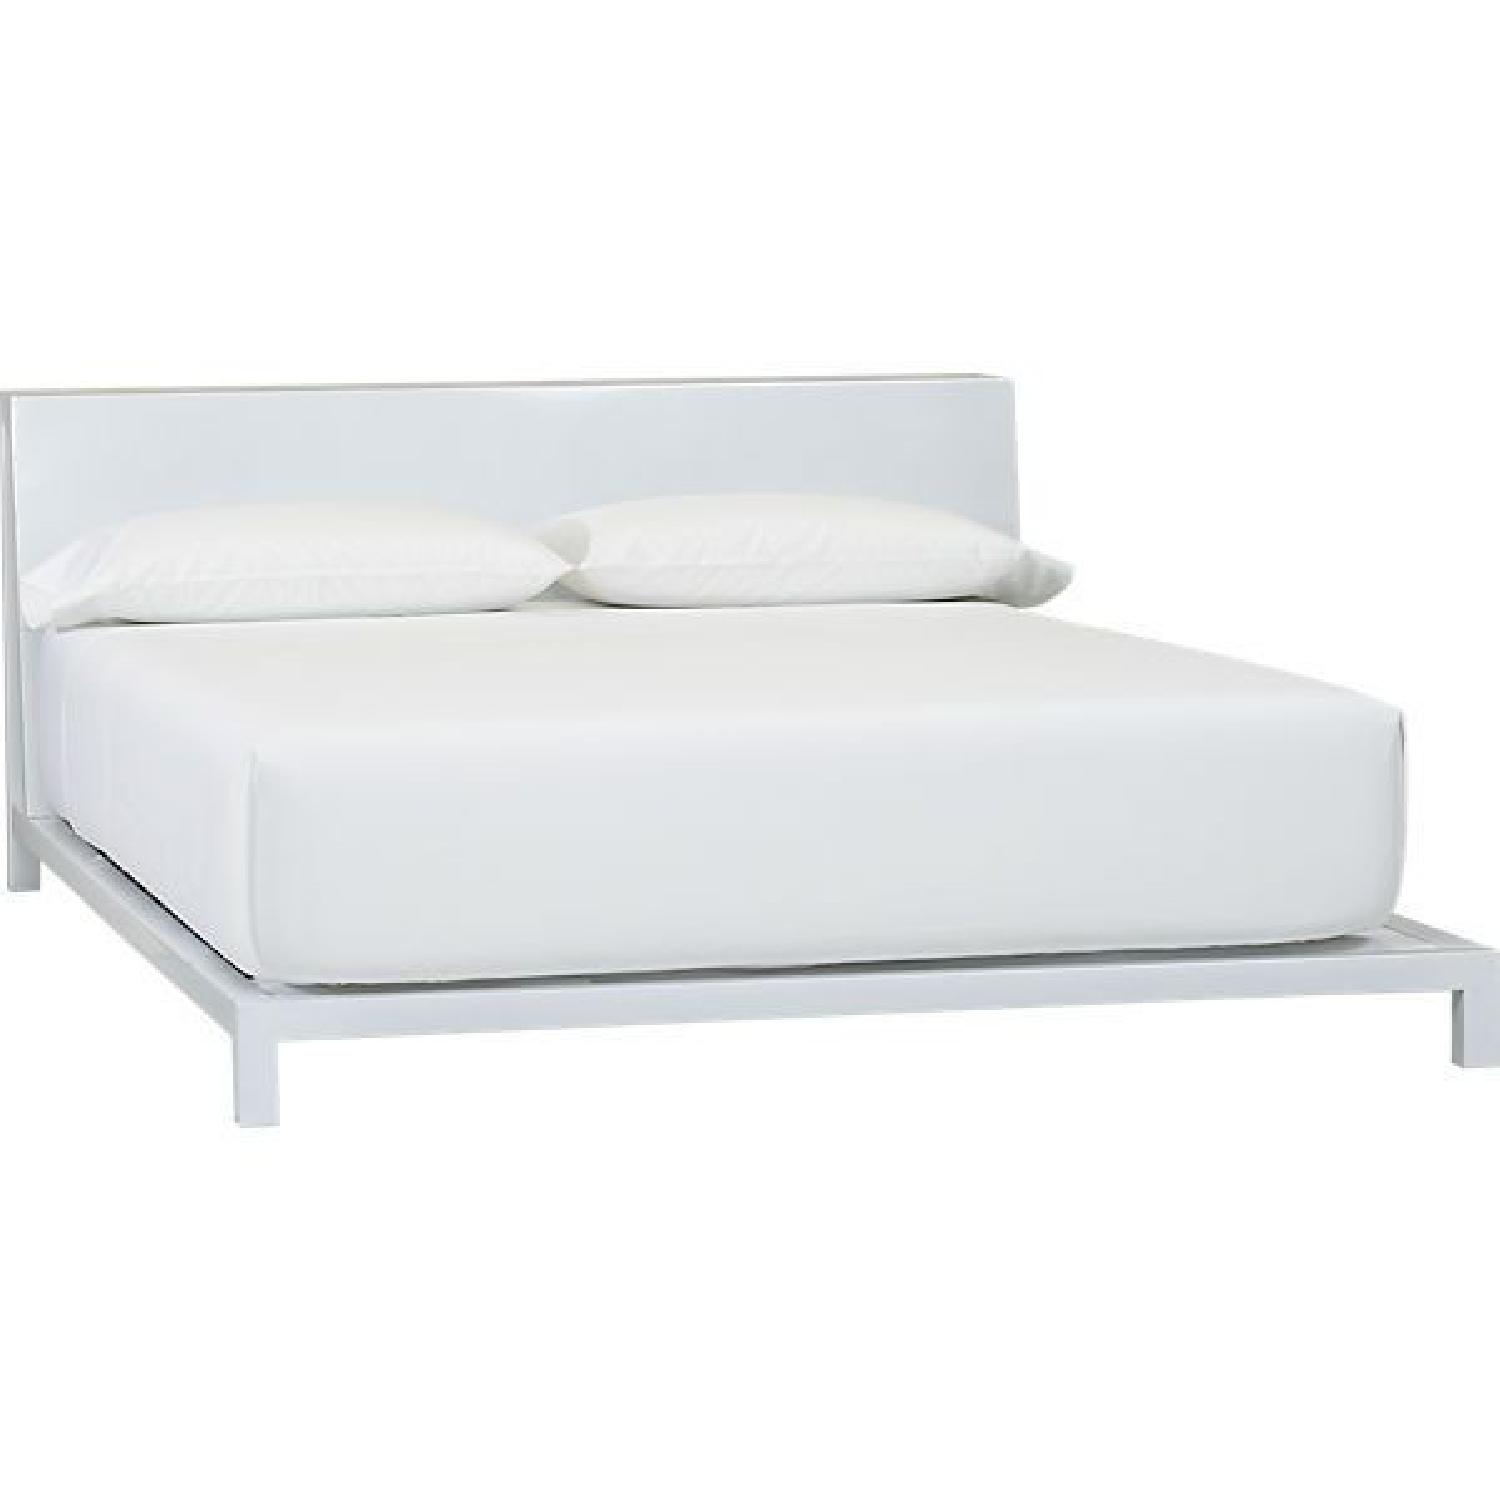 CB2 White Queen Bed Frame w/ Headboard - image-0